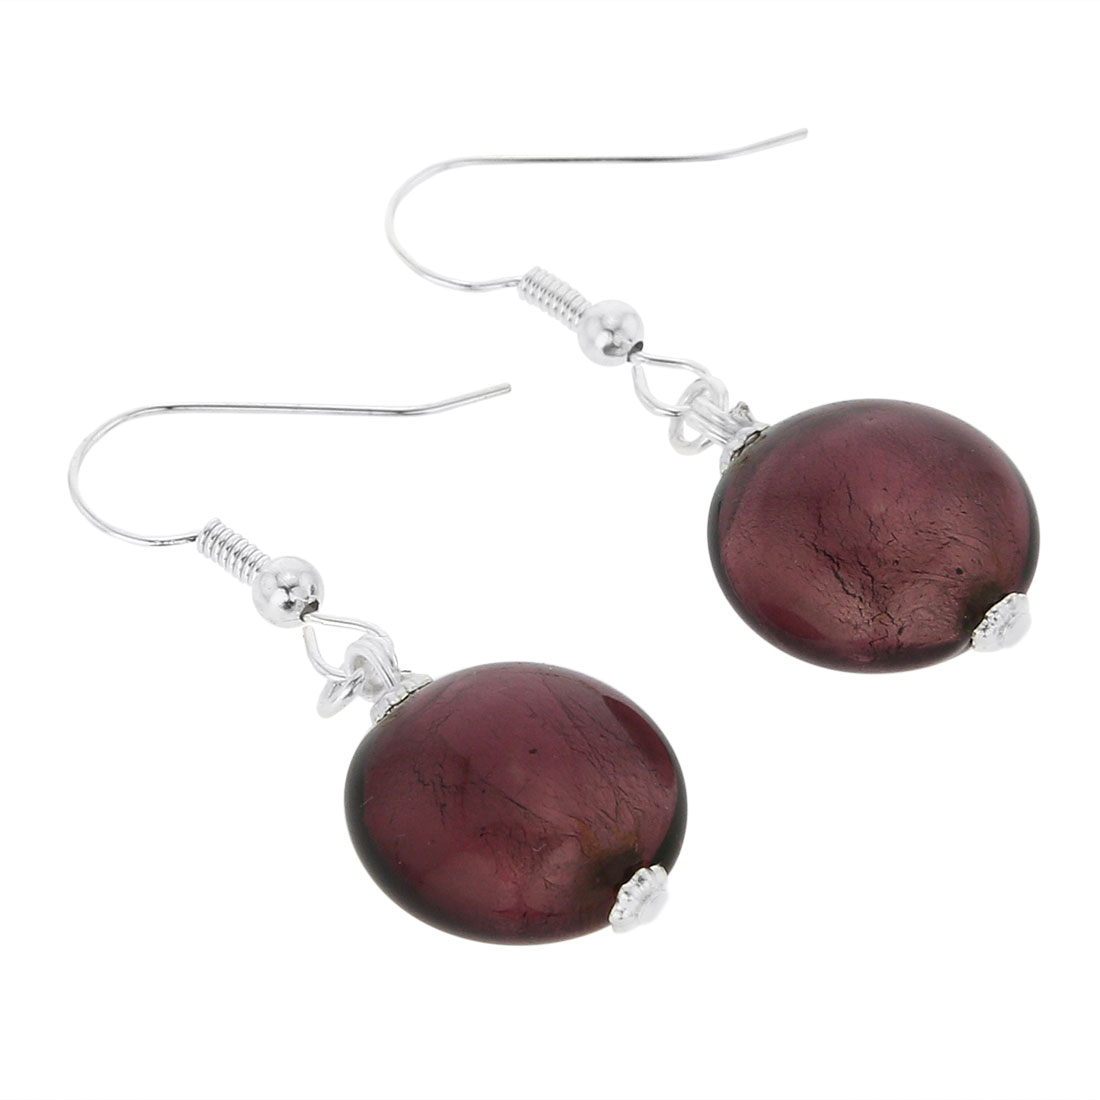 Antico Tesoro Disk Earrings - Silver Purple